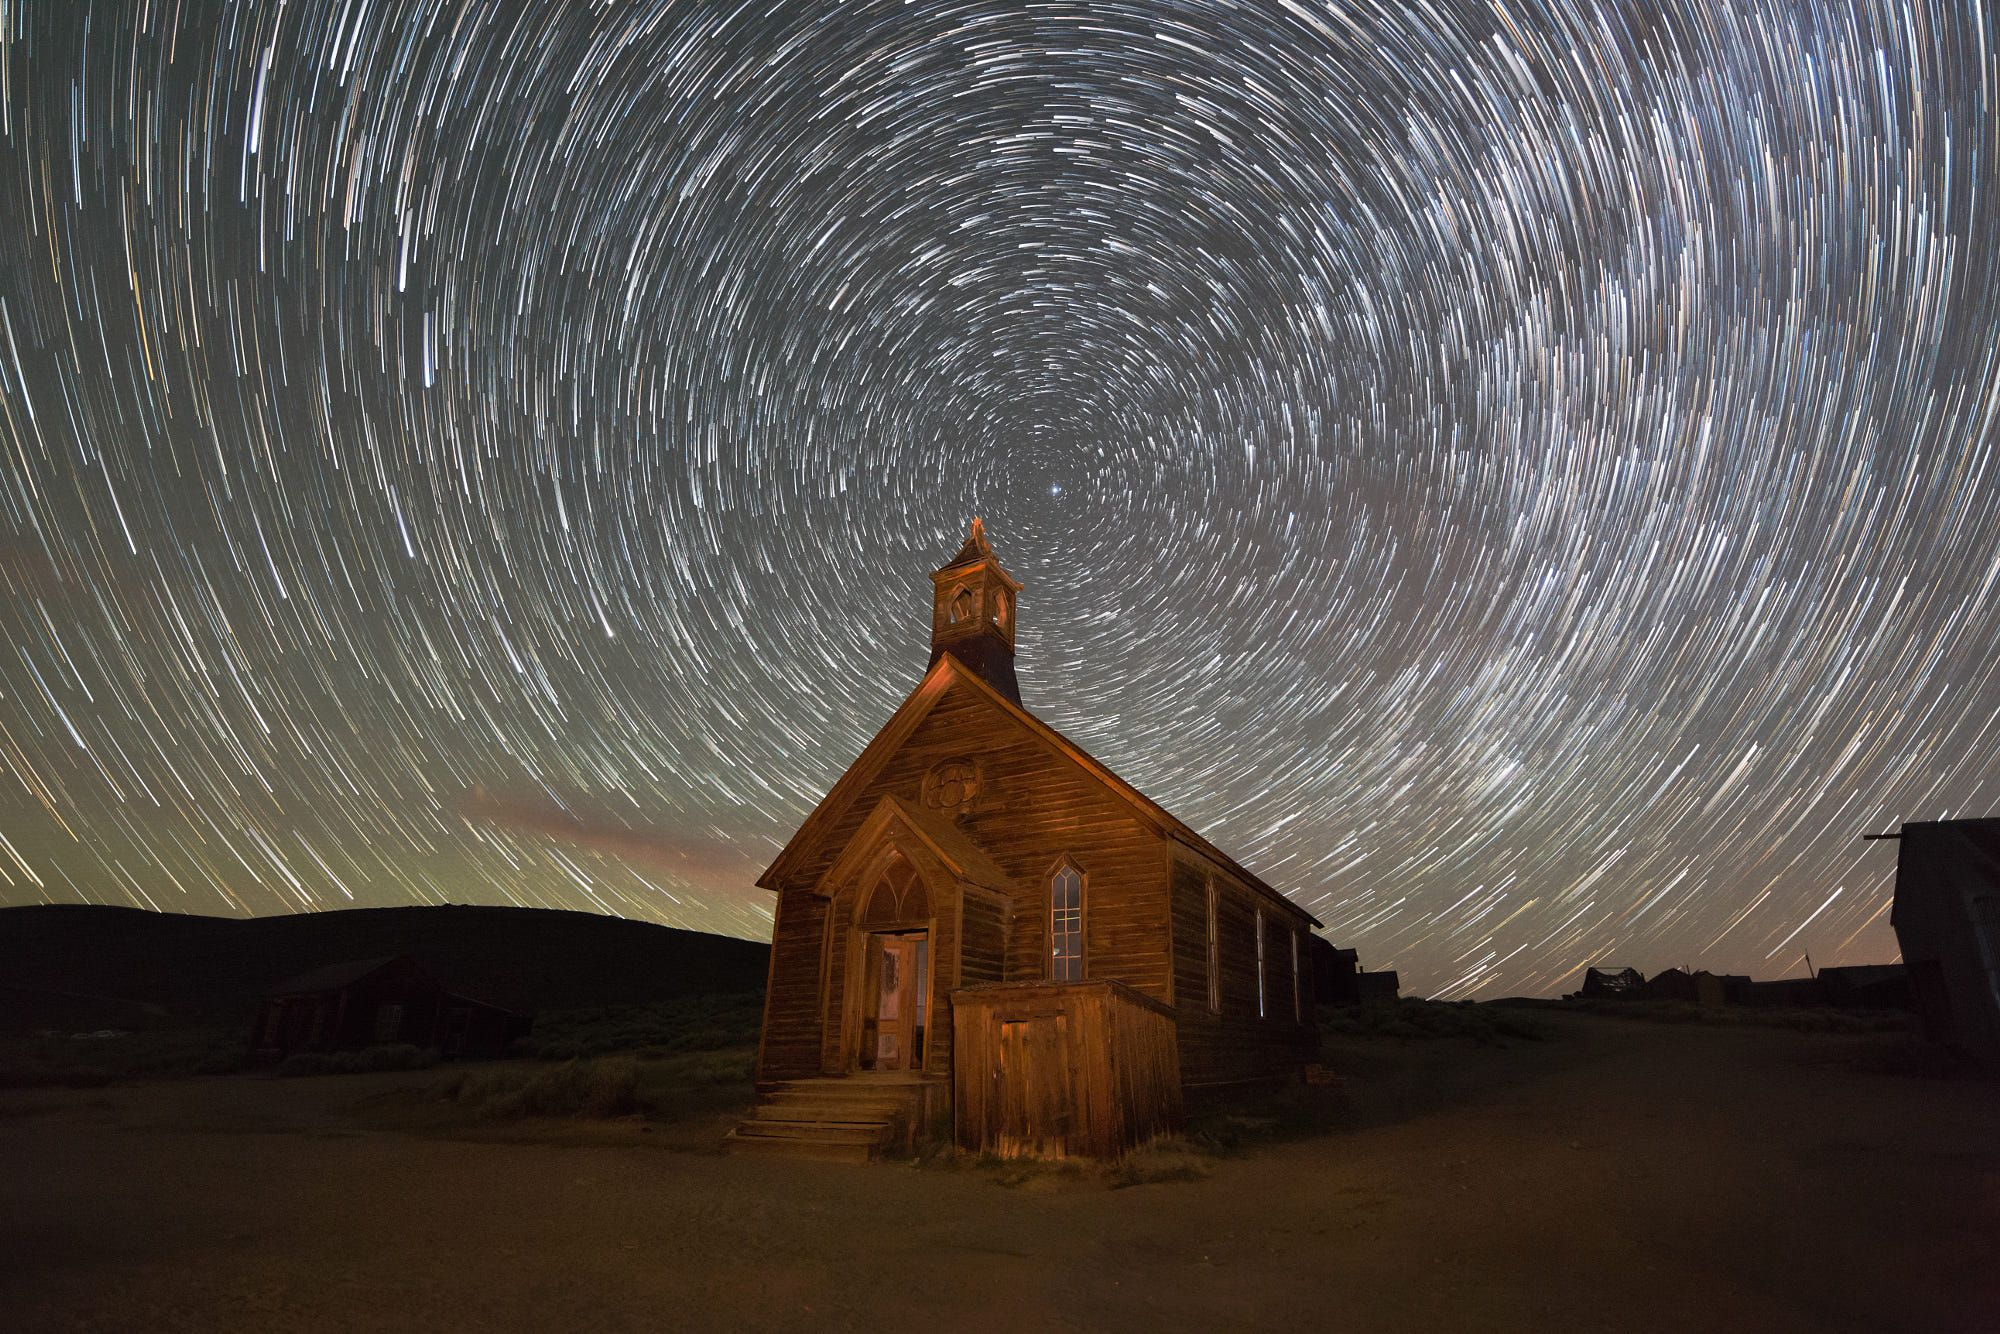 "This is an image from our last night photography workshop in the ghost town of Bodie, California. We have three more night photography dates this year at Bodie, and one for access to building interiors.I processed this image on ""The Landscape Photography Show"" (Episode 14) this week. I covered basic dark sky exposure and demonstrated creating star trails images and time-lapse videos. The recorded copy of the show is up on YouTube: http://youtu.be/YWtkgD4ofMo"